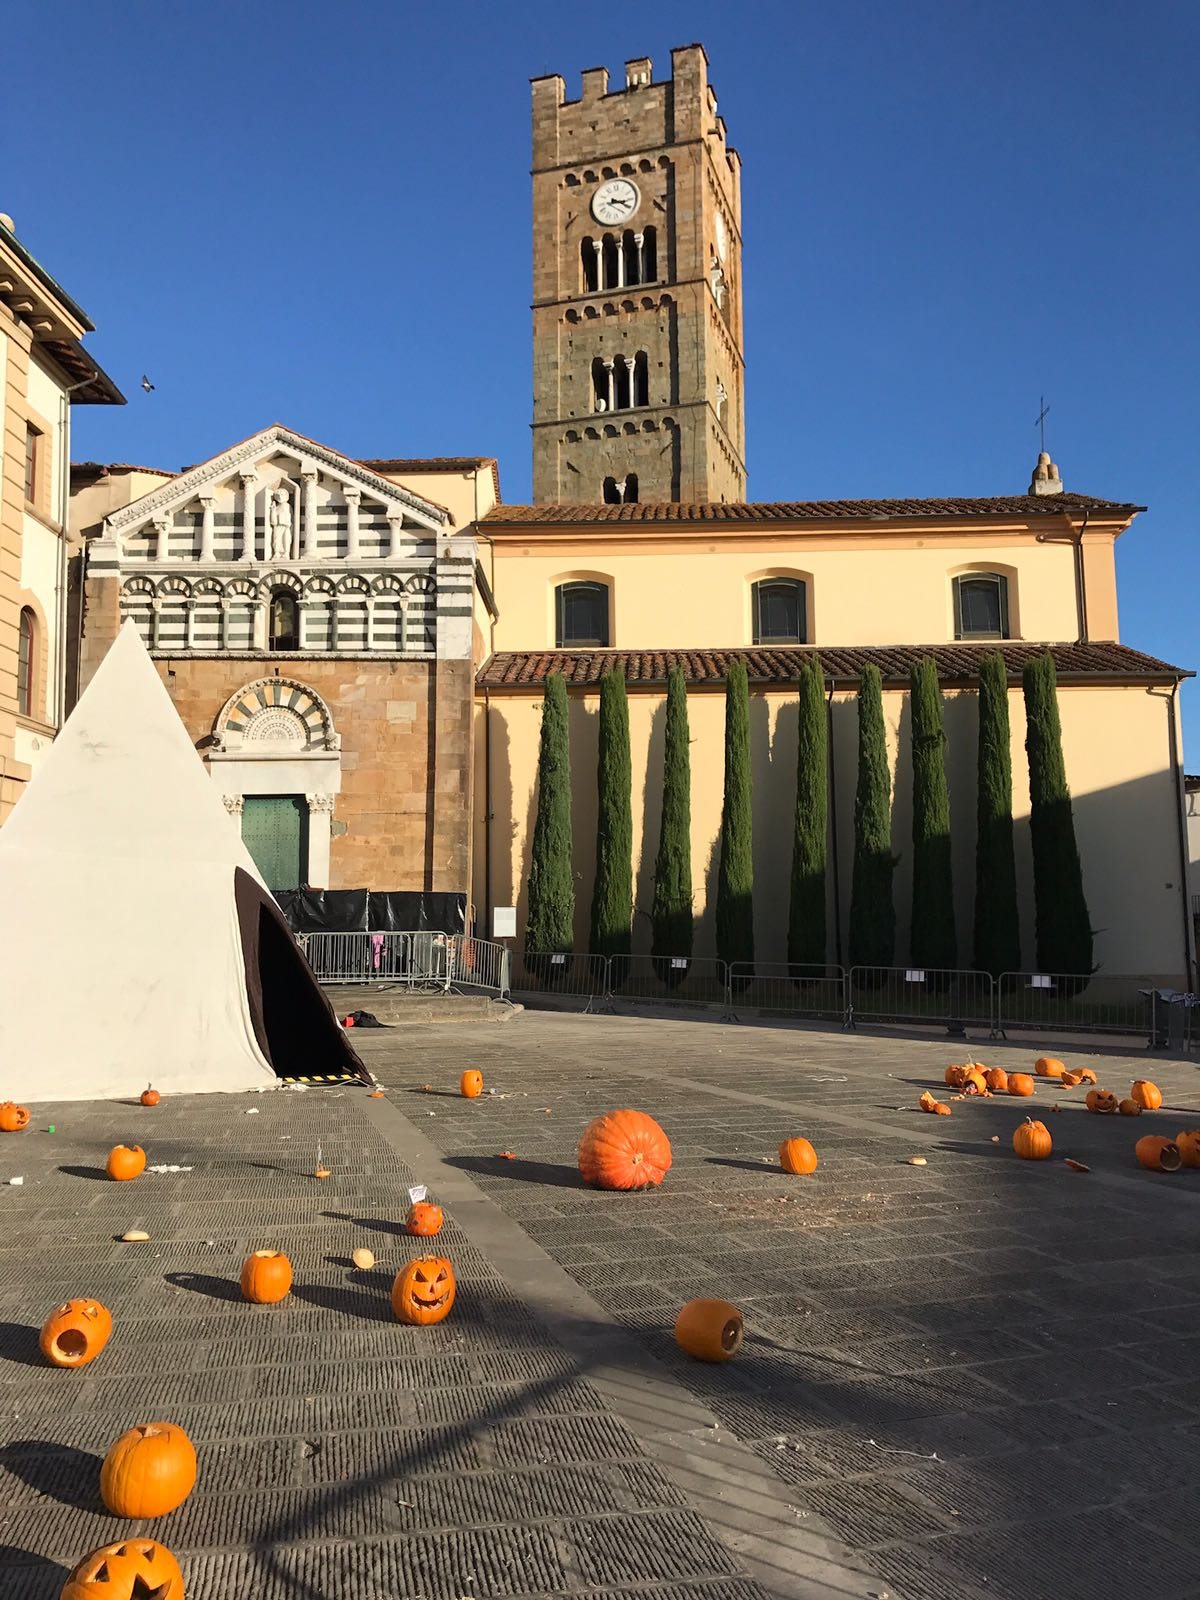 Town square in Altopascio littered with the remains of pumpkins